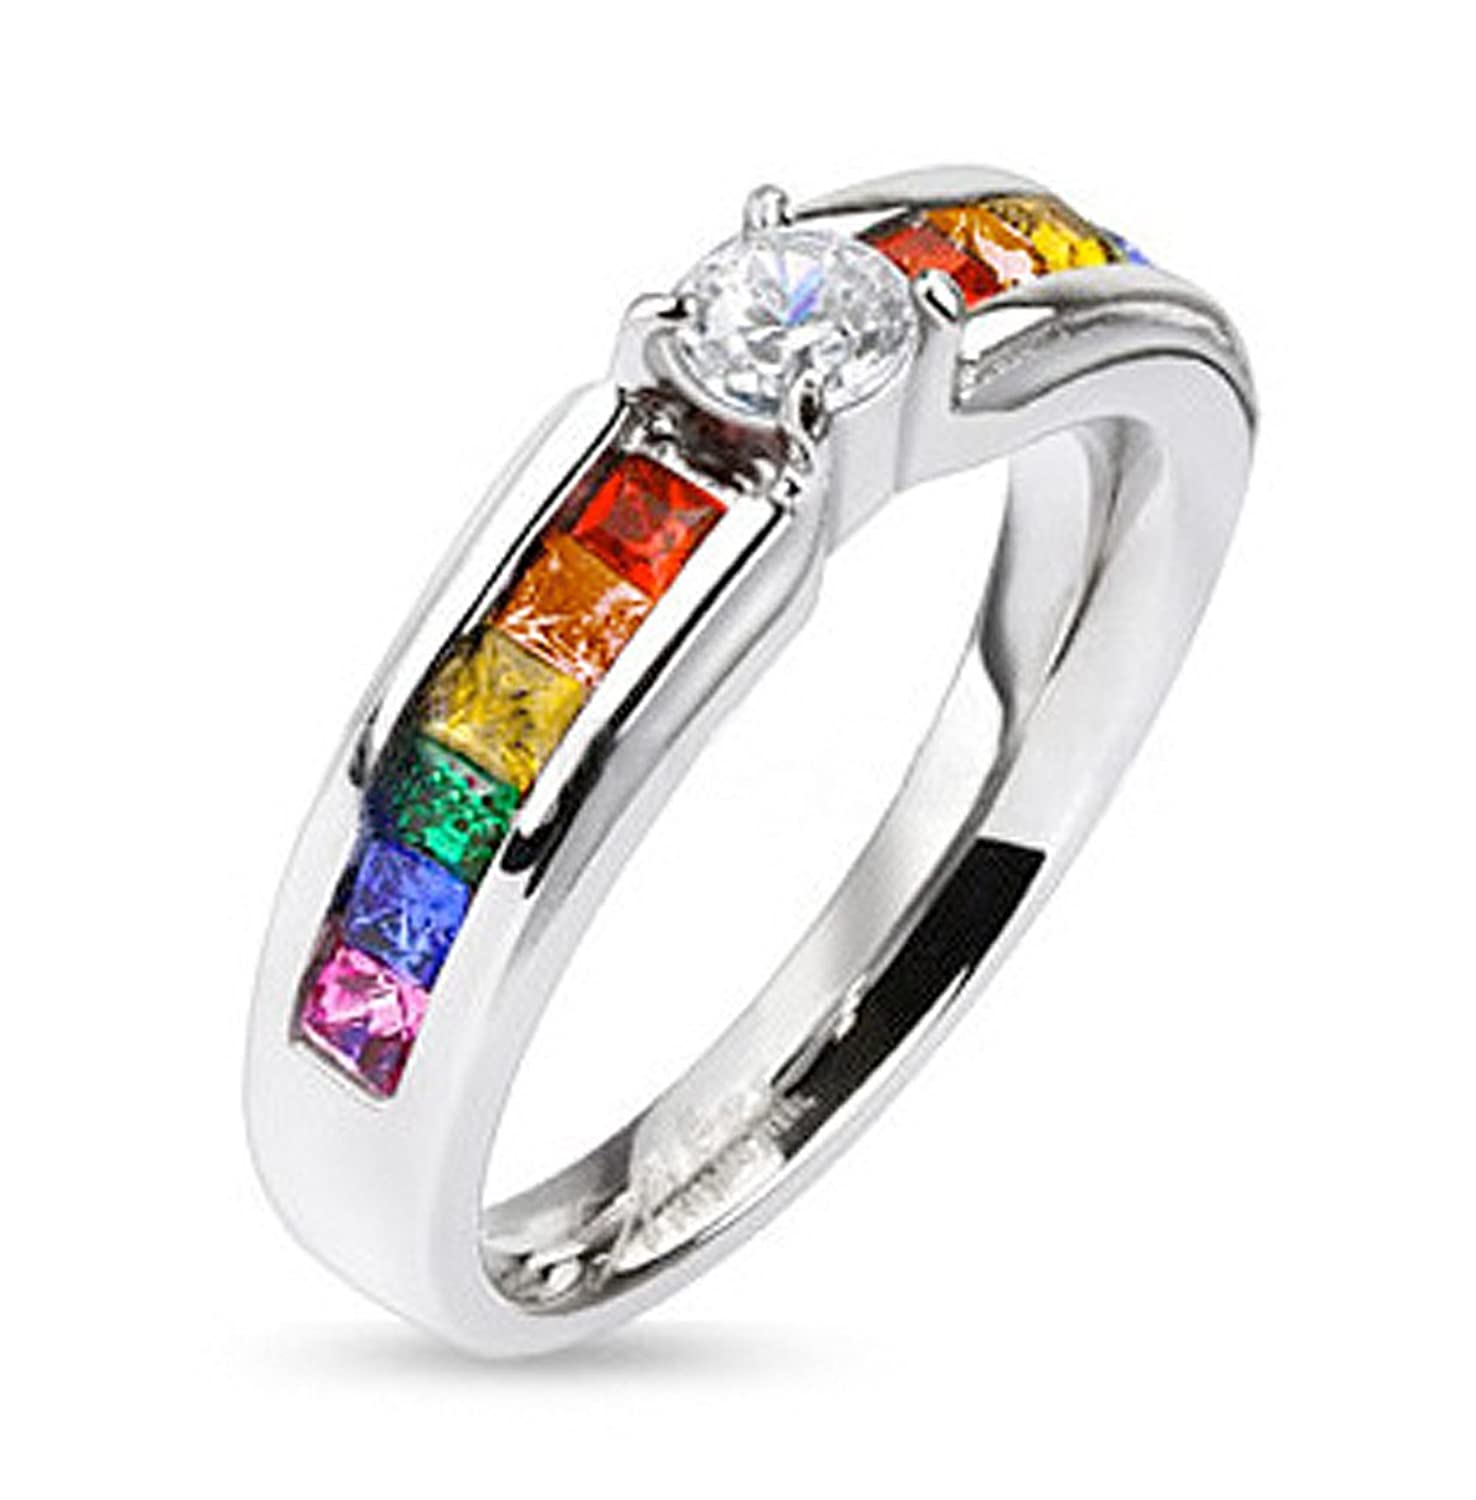 rings engagement wedding ring anime of new